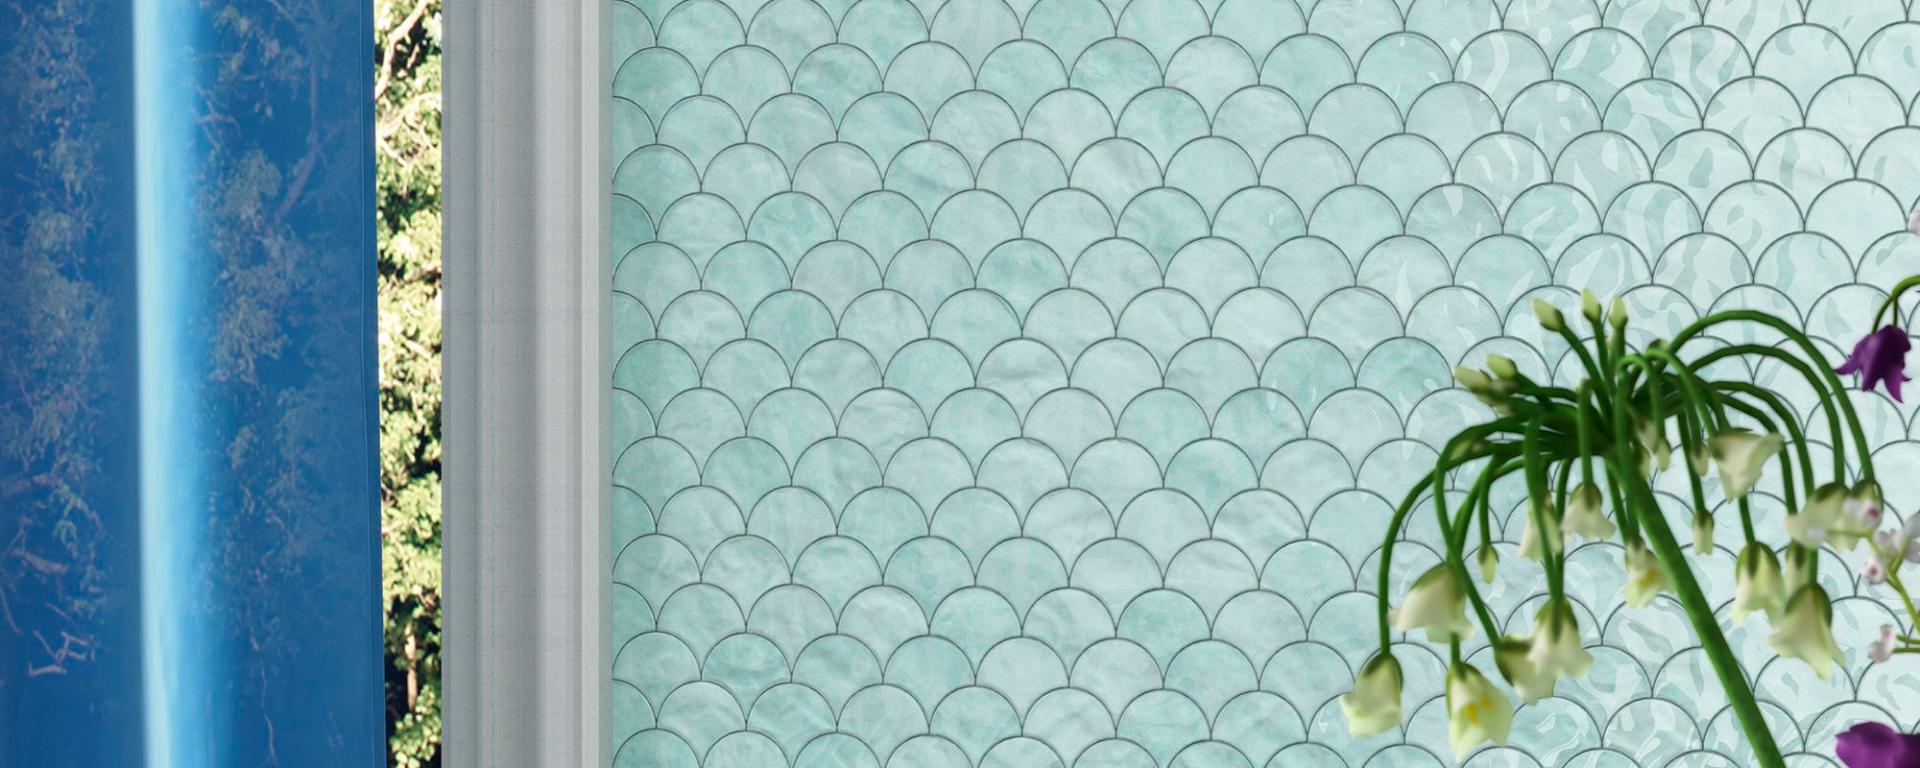 cerasarda pastel nautical marine collection cersaie 2019